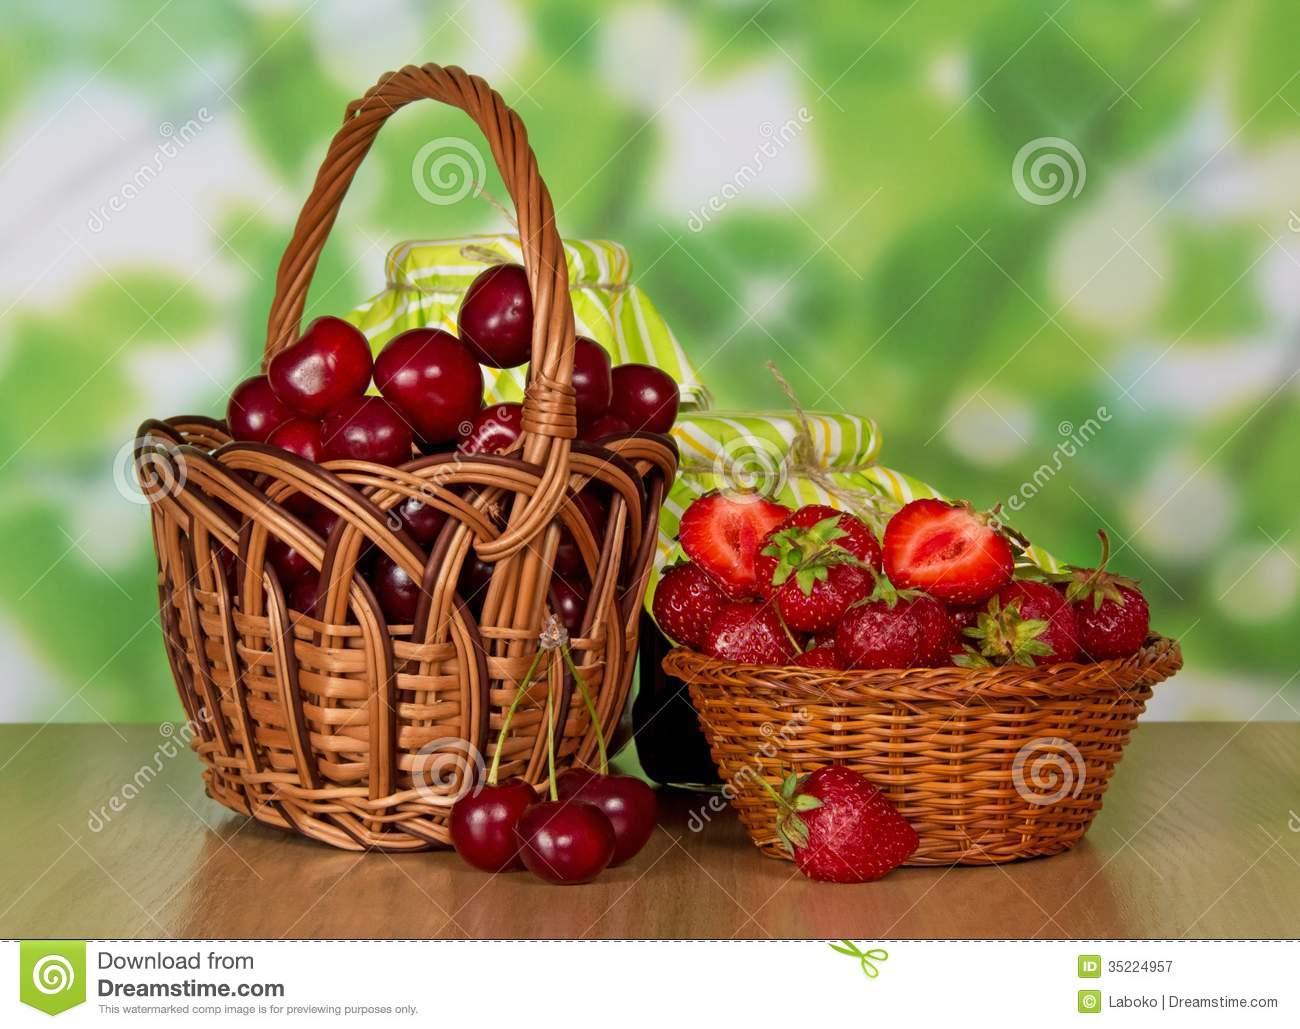 Cherries And Strawberries In Baskets Stock Image - Image ...